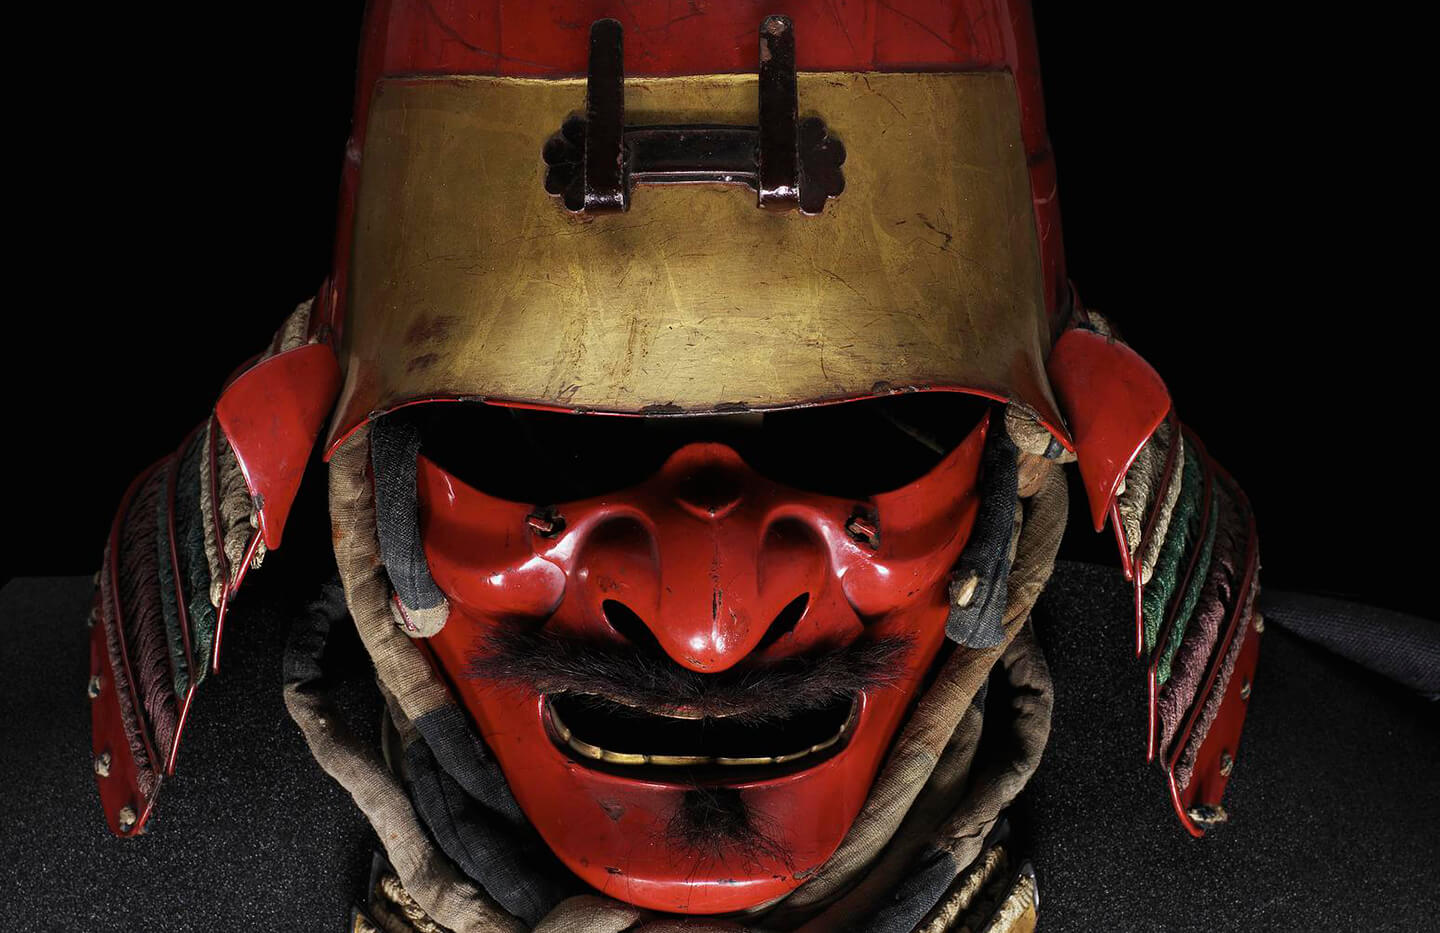 Red and gold lacquered kabuto with the front plate imitating a man's face.